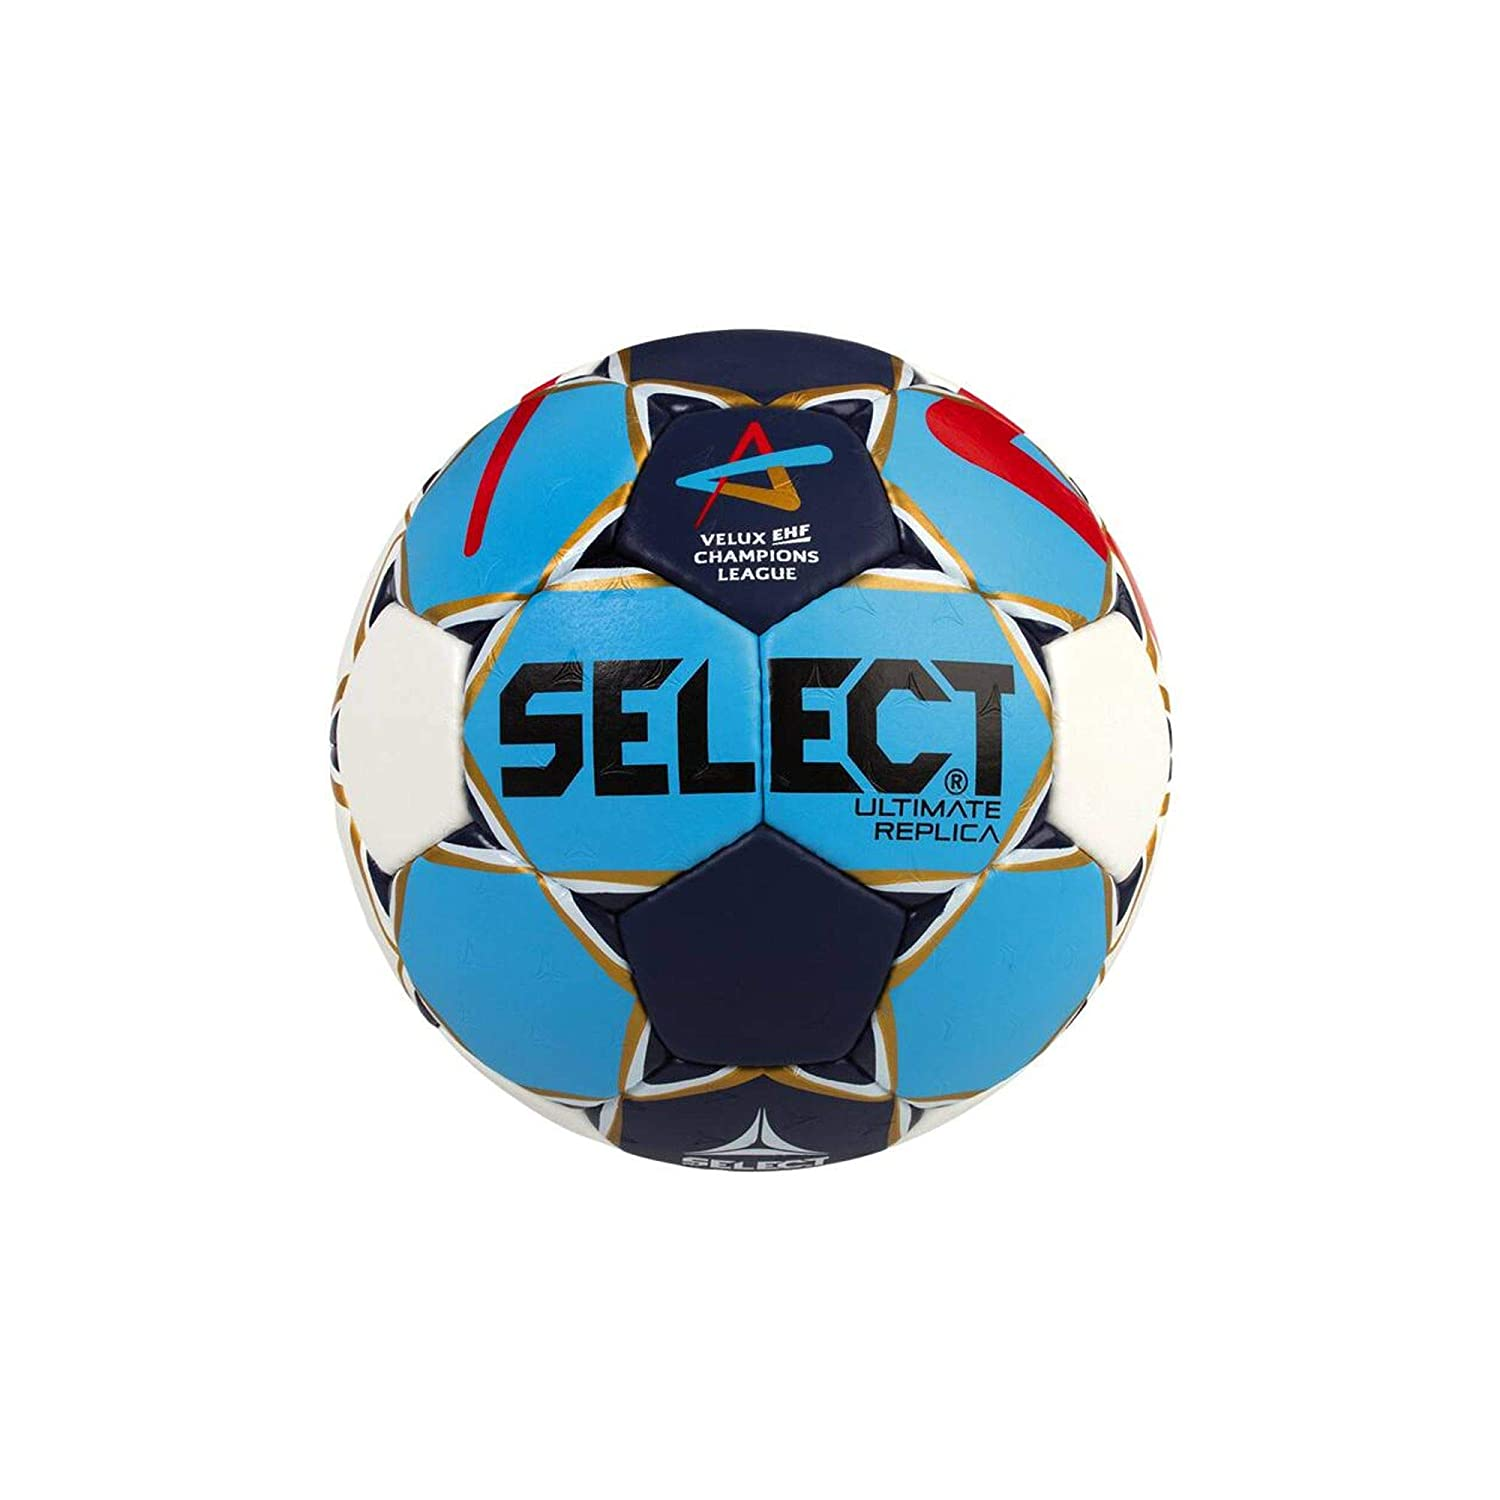 TALLA 2. SELECT Ultimate Replica Cl Men Balón de Balonmano, Hombre